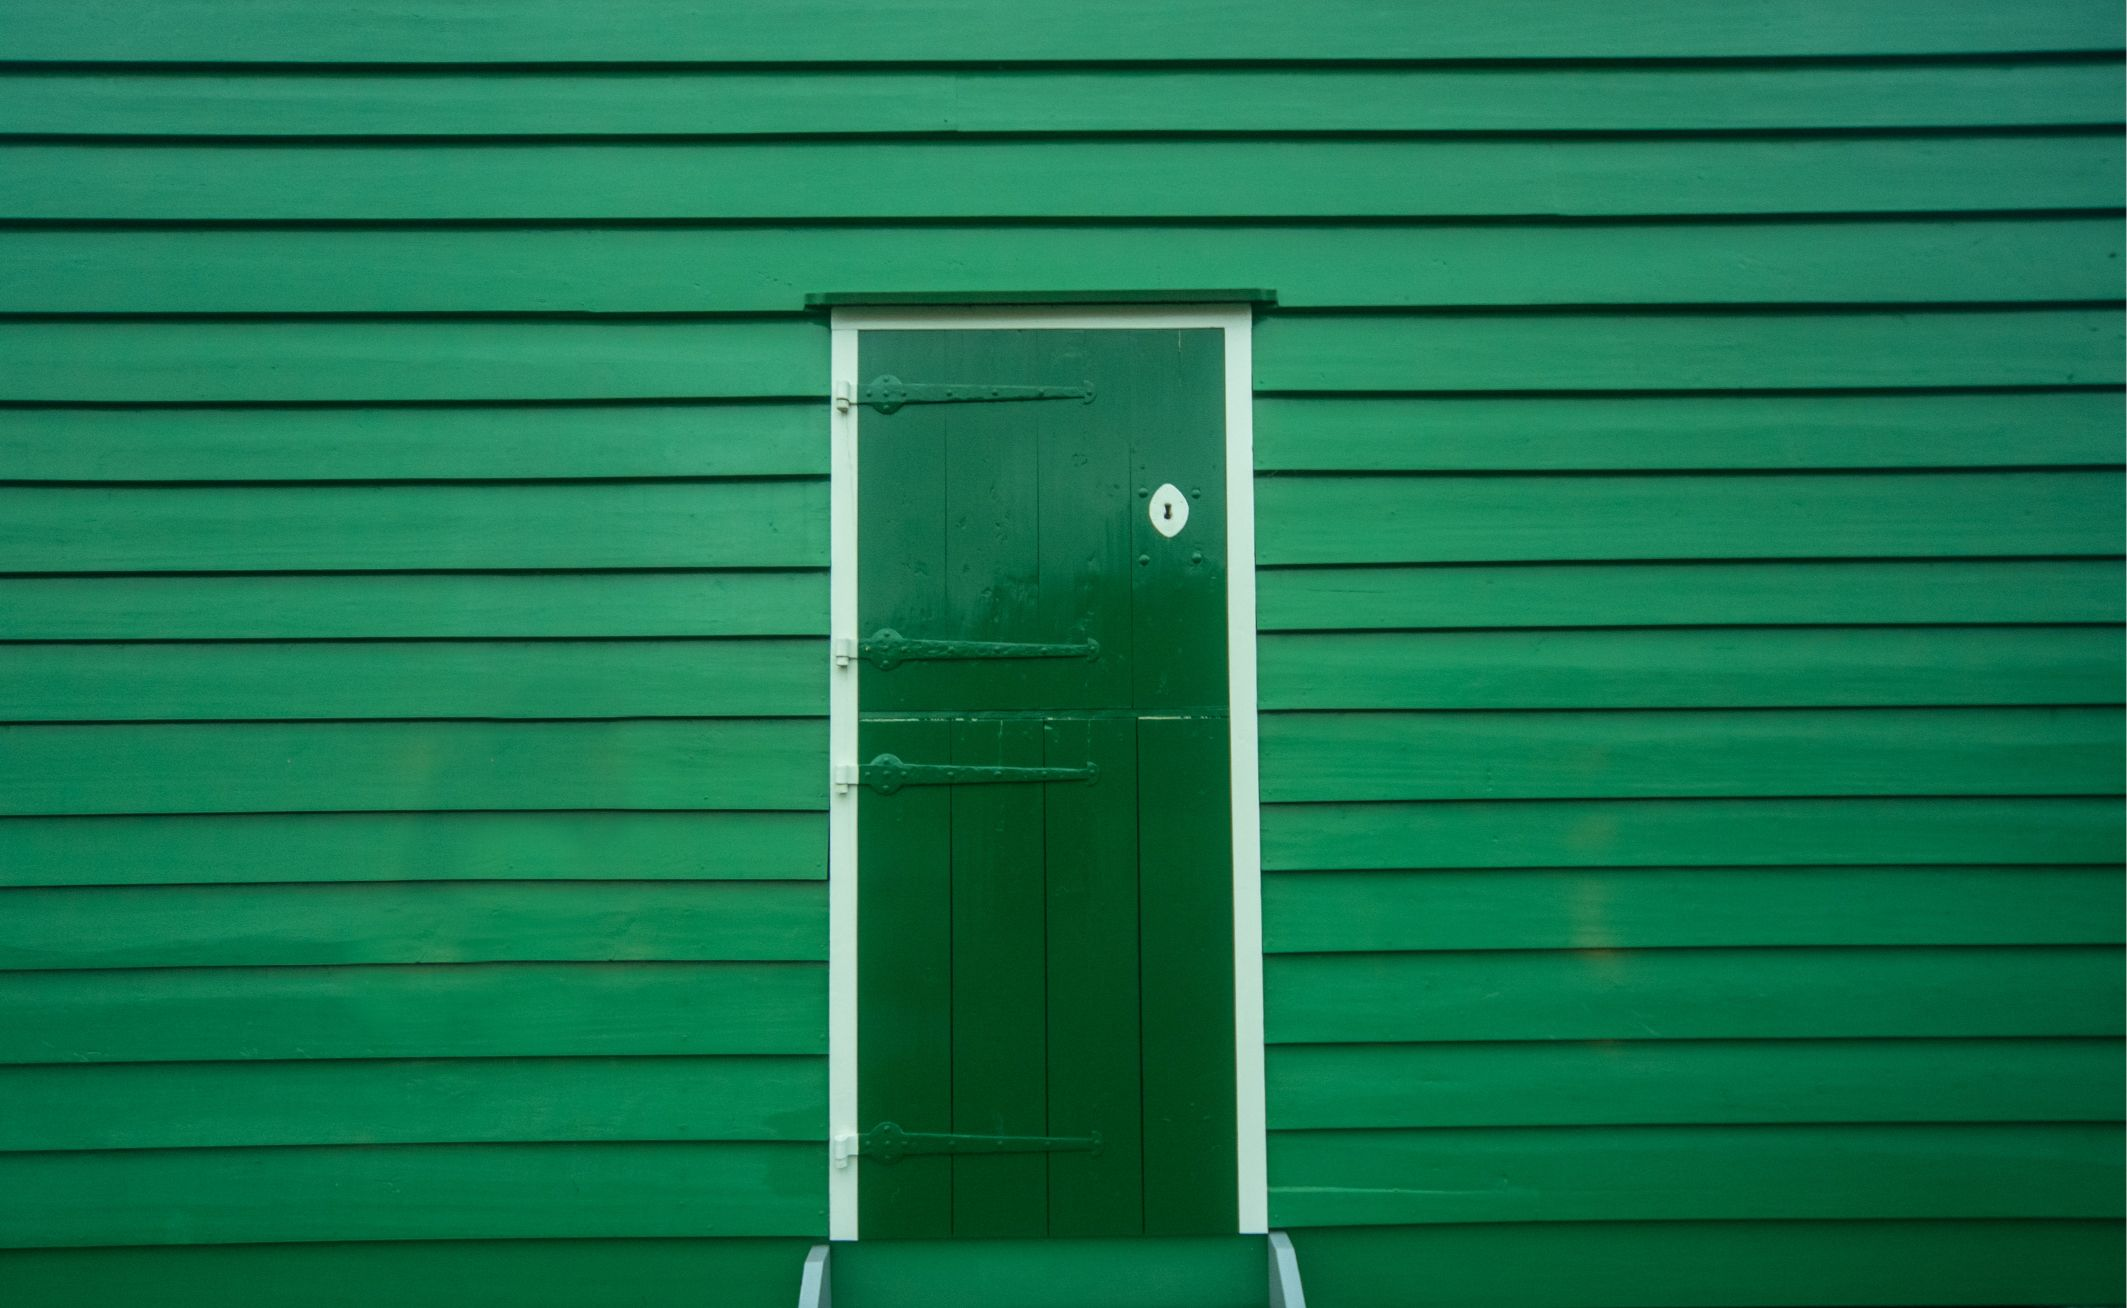 How does a green door make you feel?